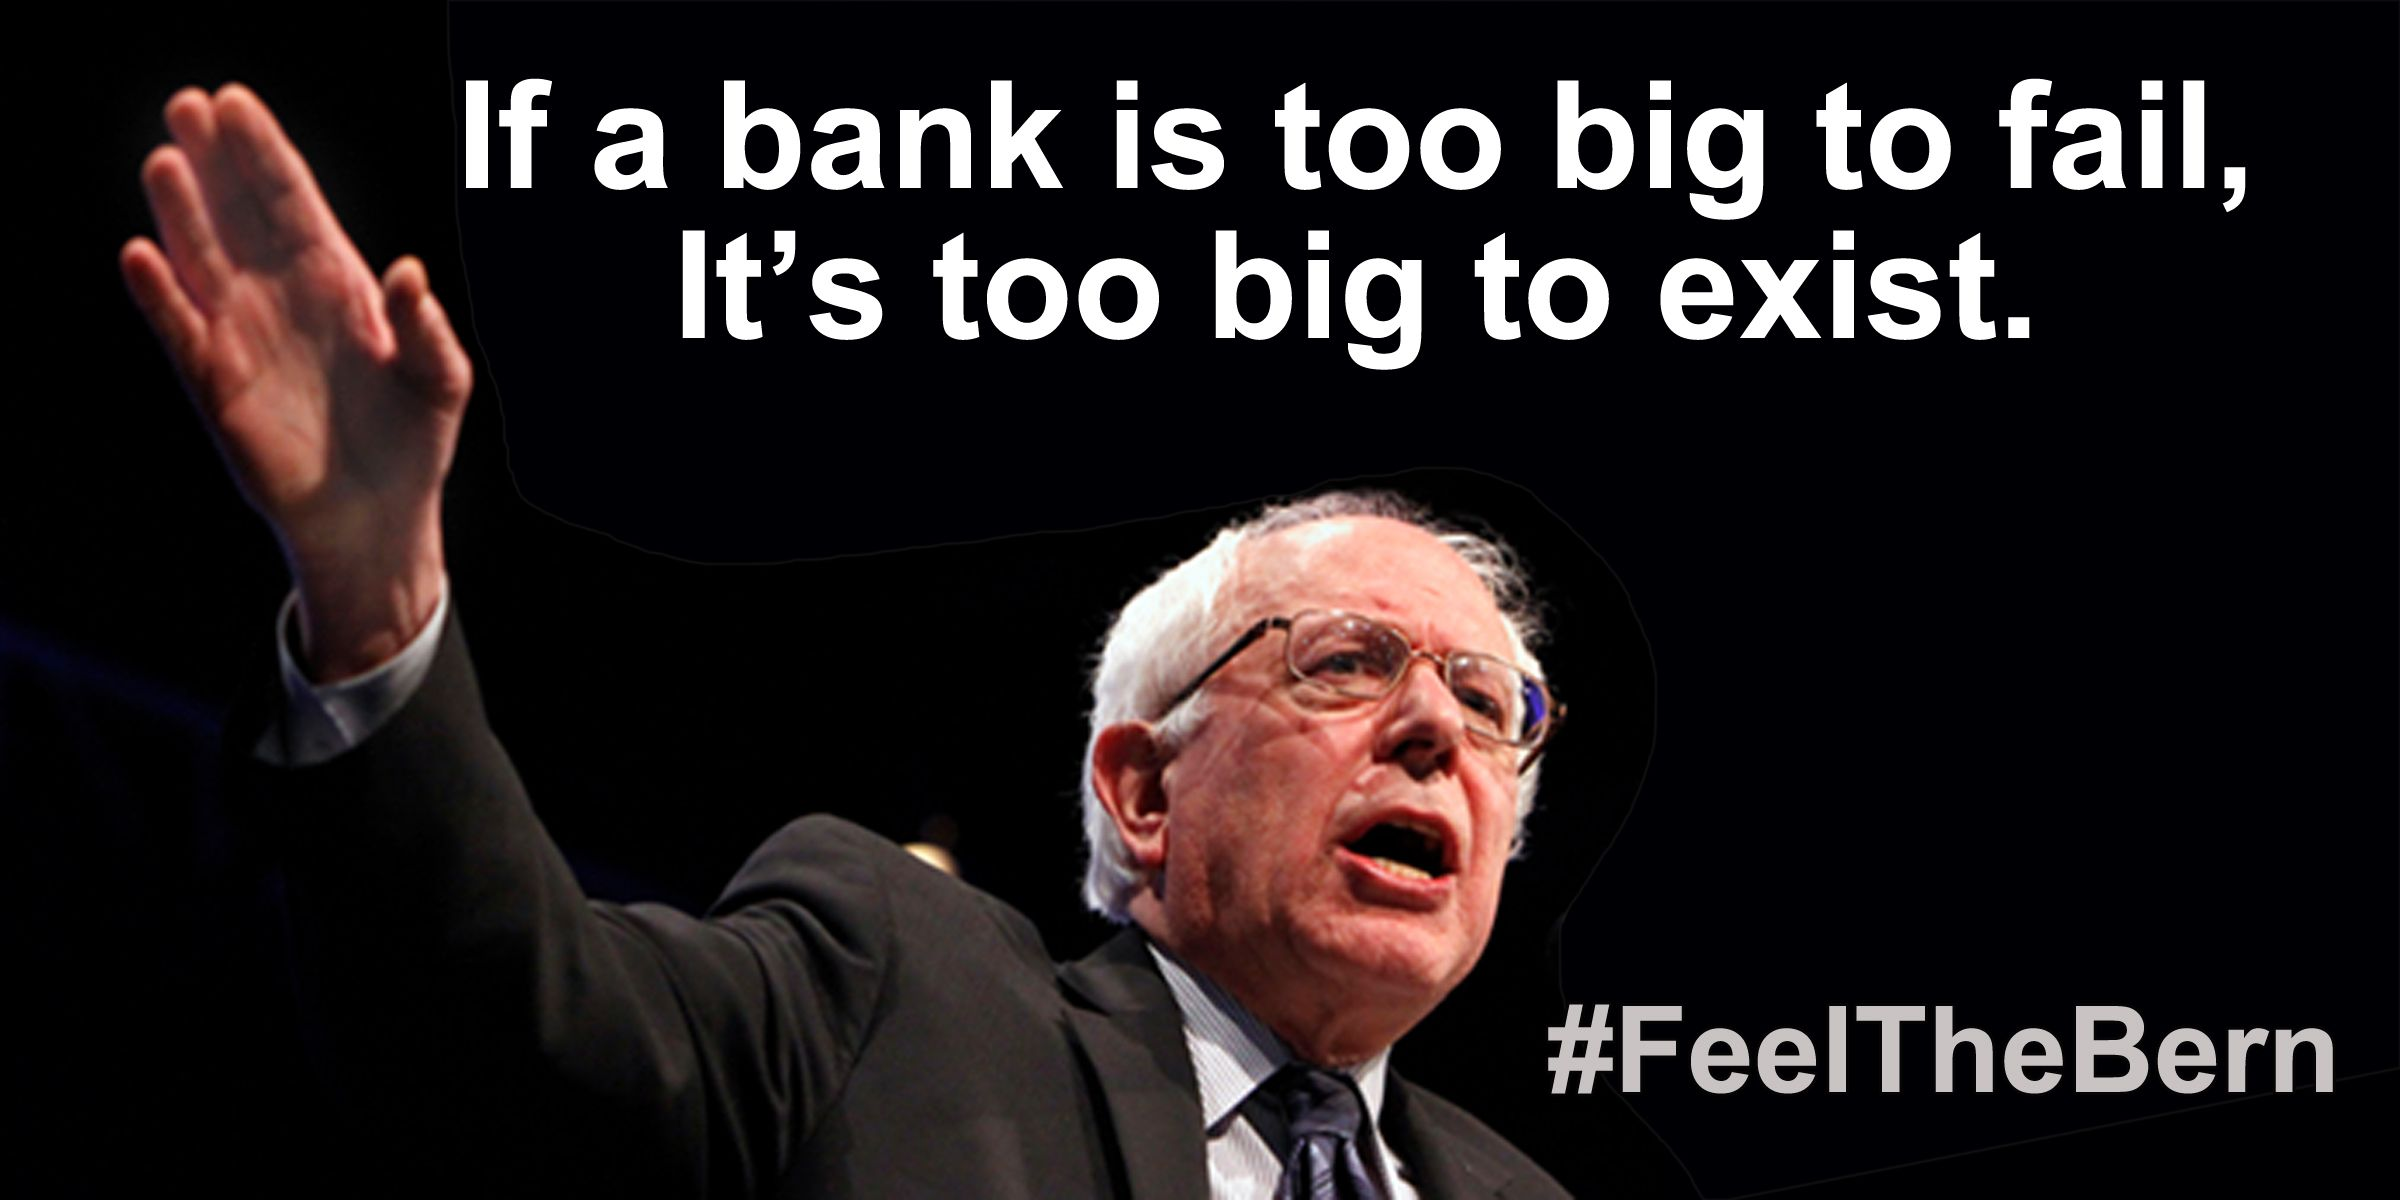 Bernie Sanders Quotes Better World Quotes  Bernie Sanders On Banks  National Issues